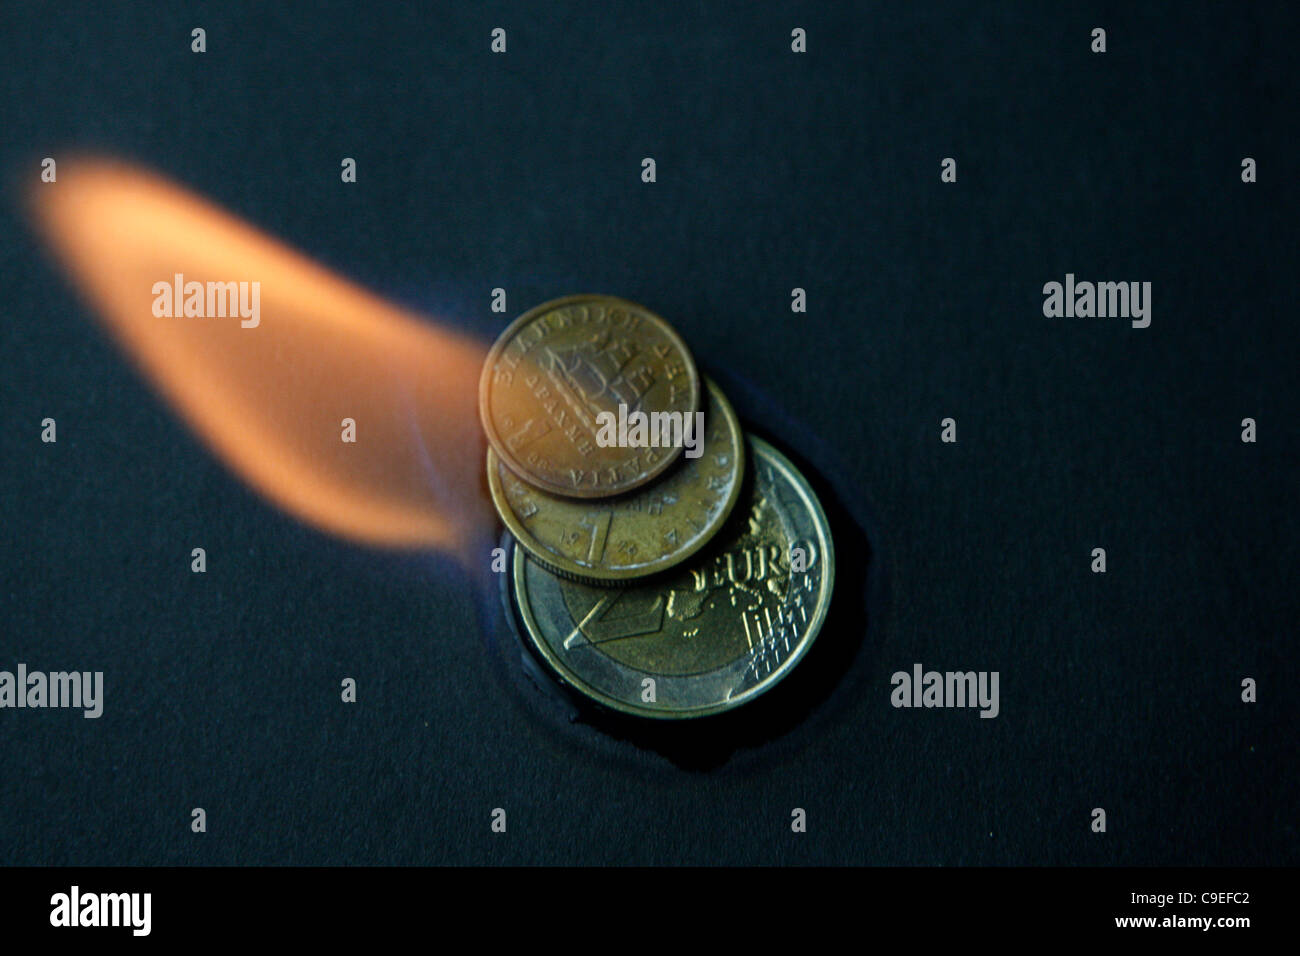 7 December 2011 Athens Greece. Euro Zone Crisis. Greece could return to its old currency, the drachma. - Stock Image